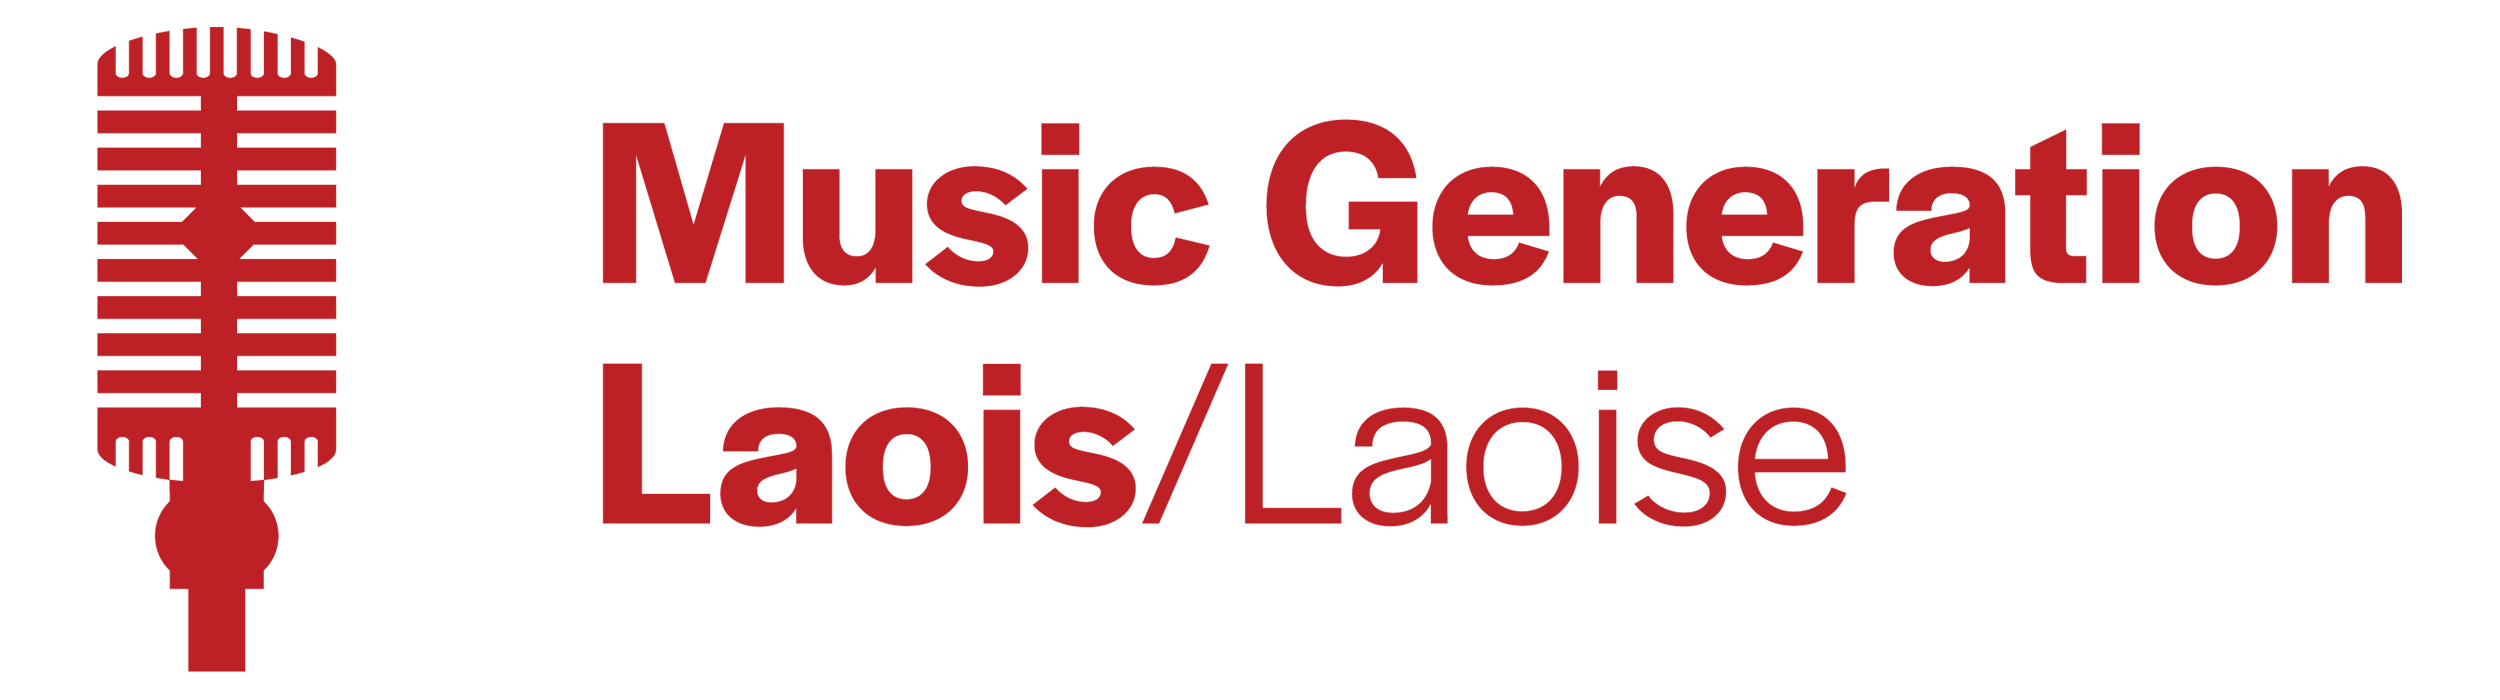 Music Generation Laois